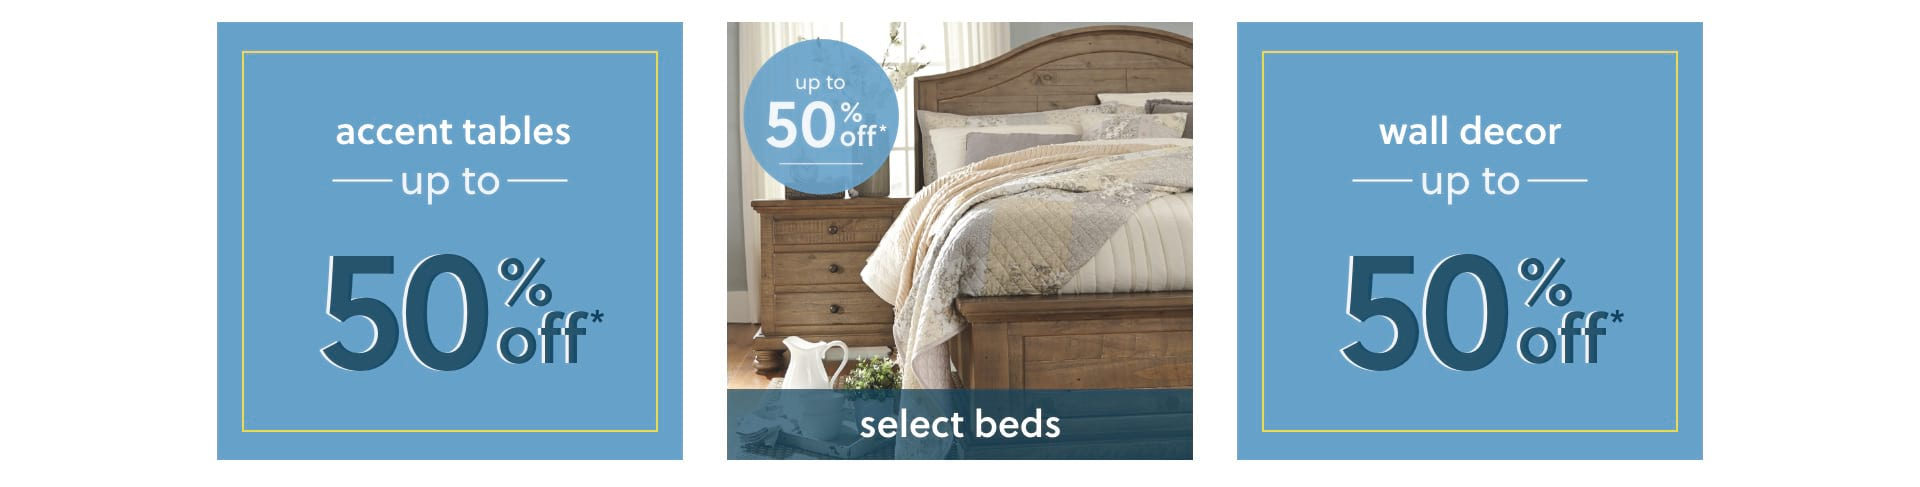 Accent Tables, Select Beds, and Wall Decor up to 50% off*